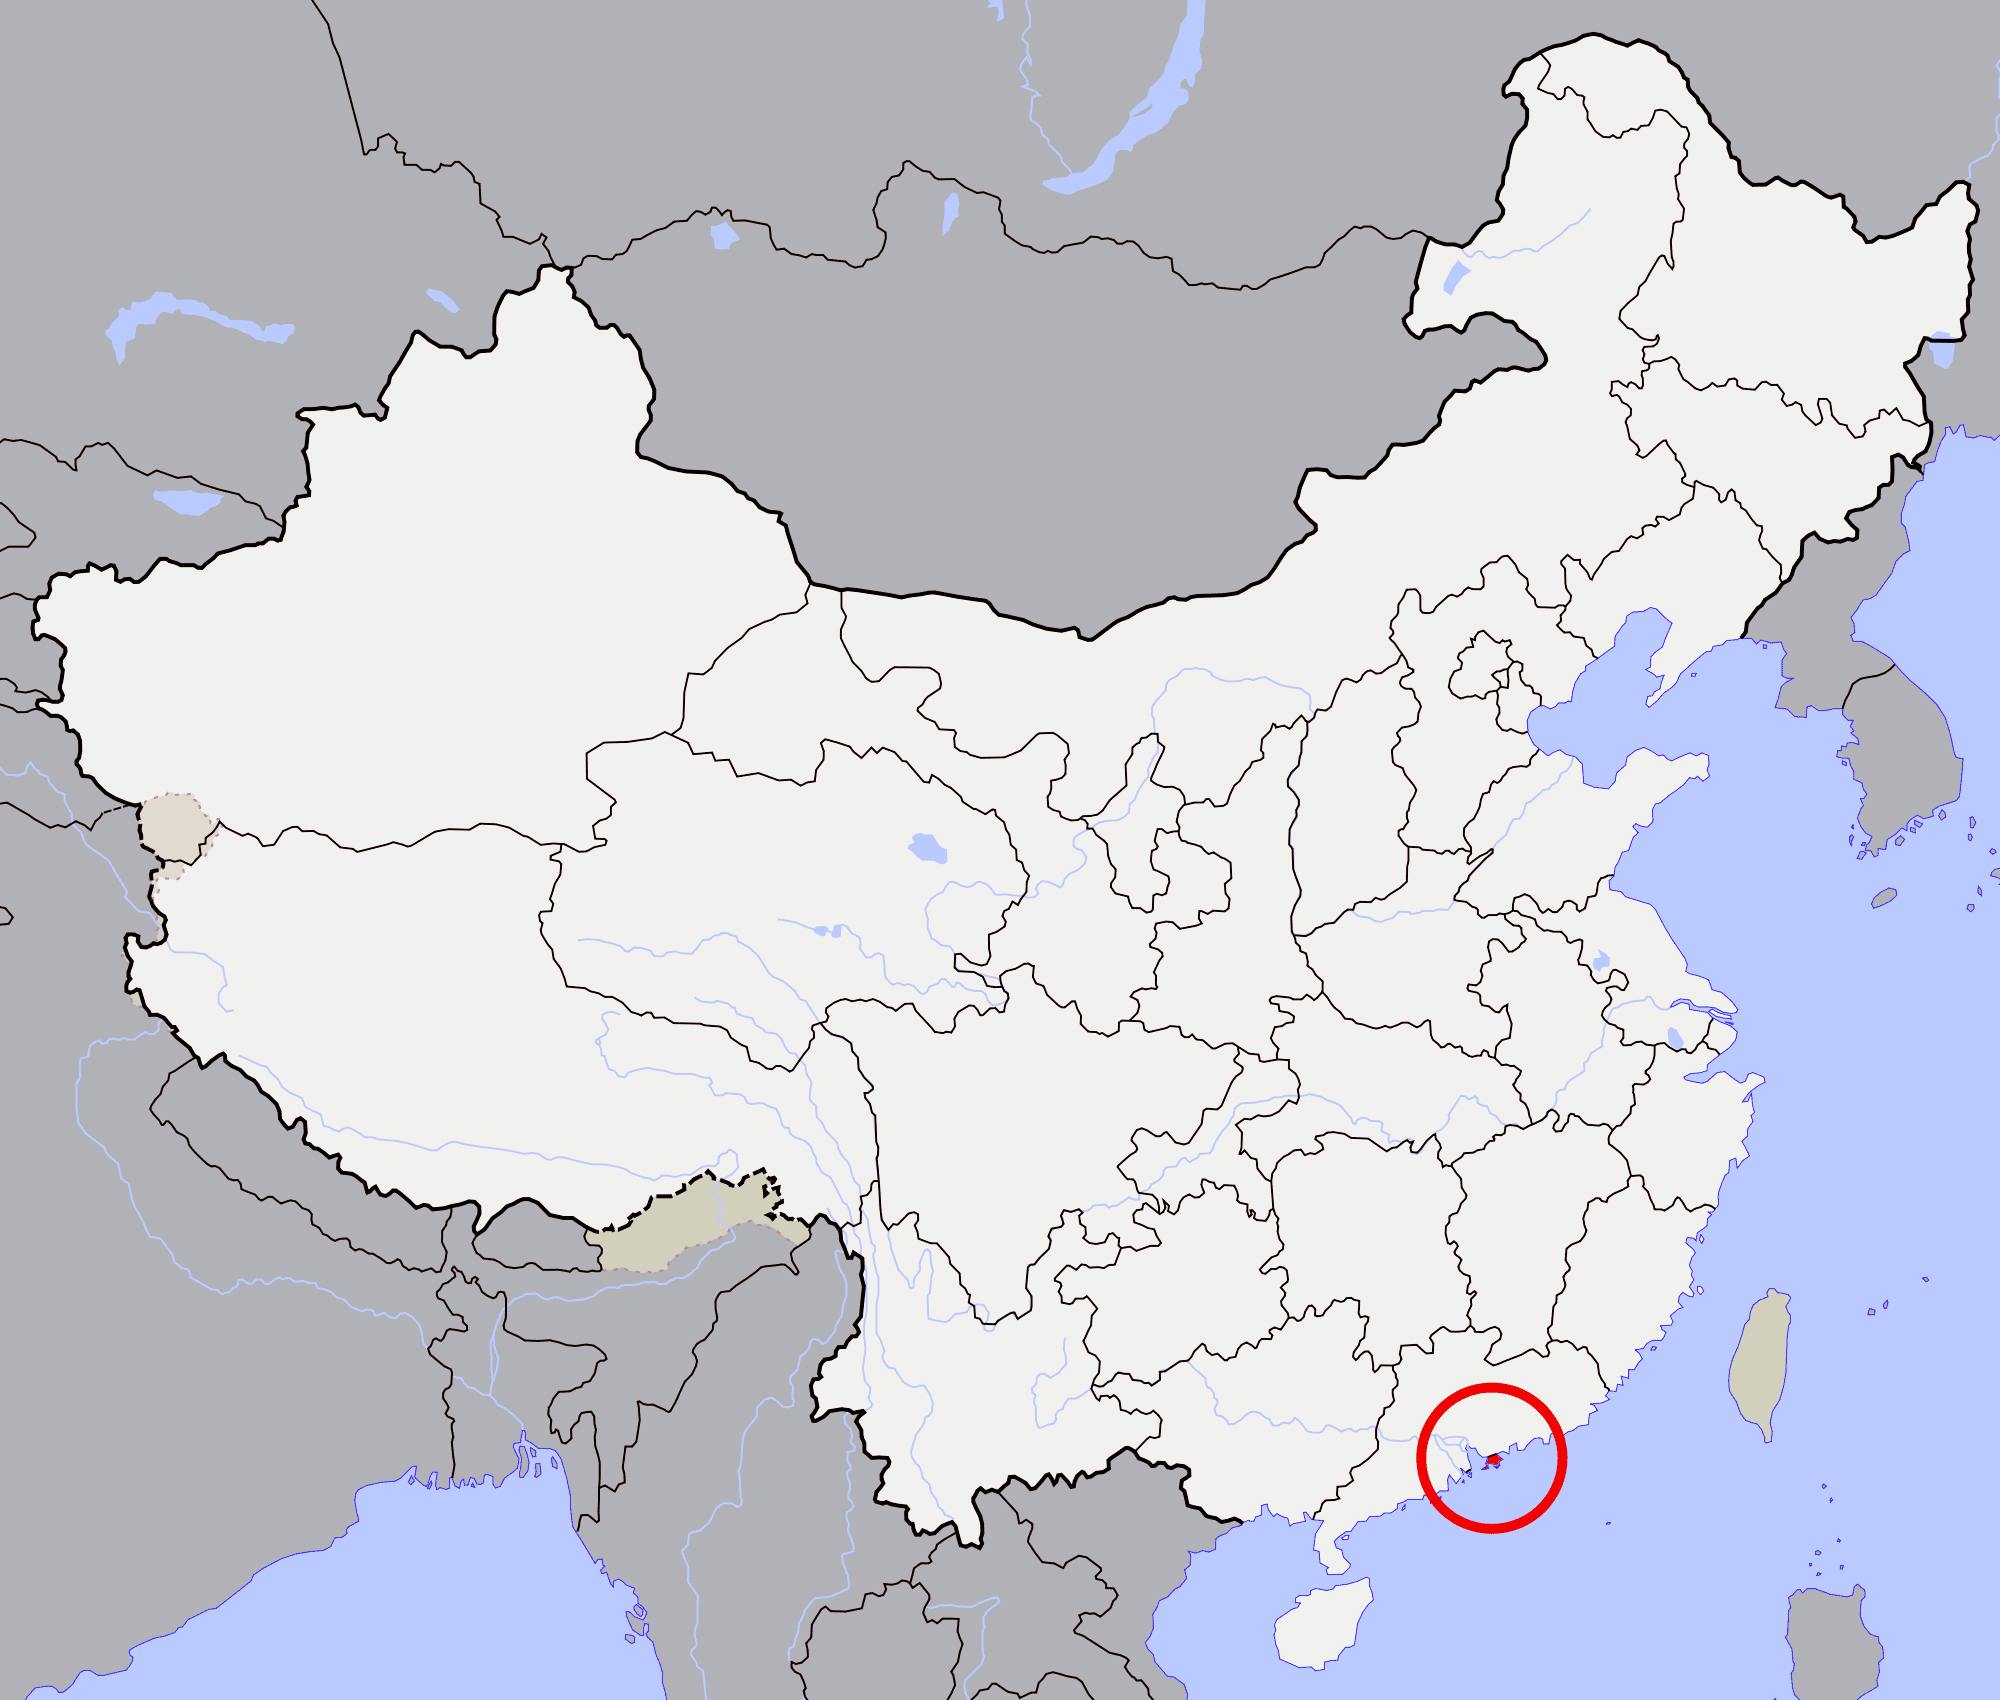 Map Of Asia Hong Kong.Large Location Map Of Hong Kong Hong Kong Asia Mapsland Maps